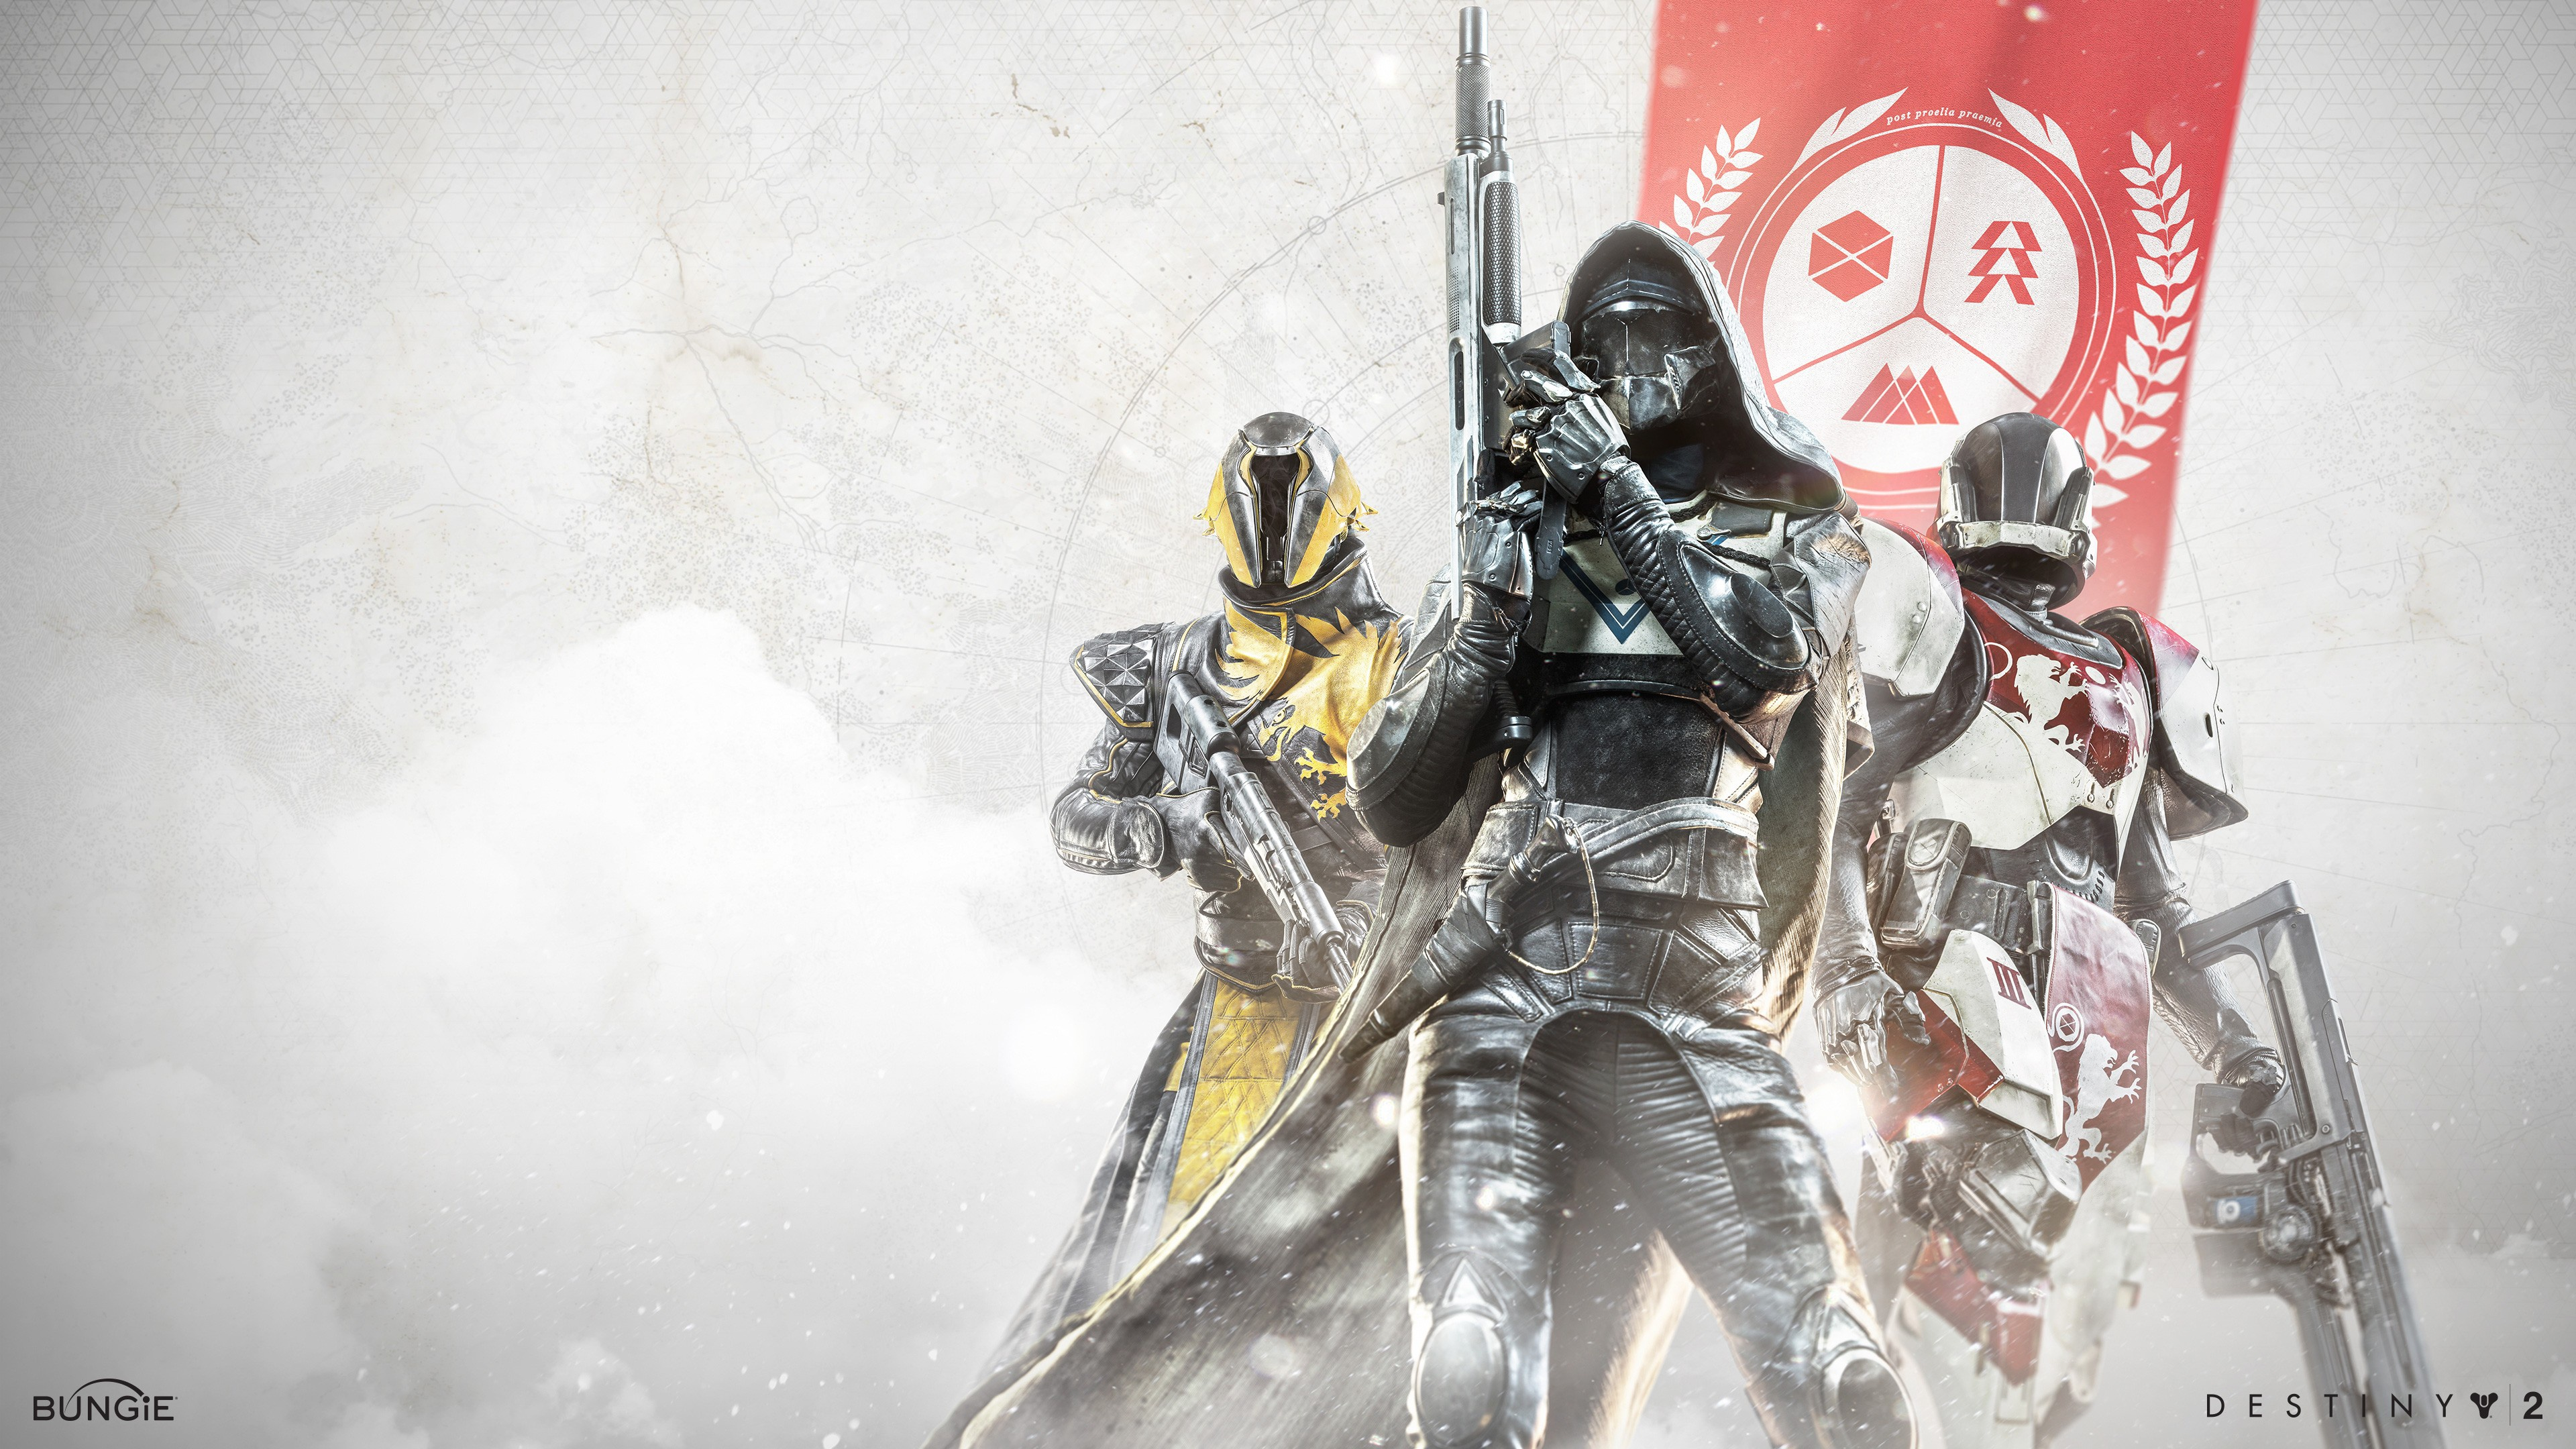 53 destiny 2 hd wallpapers | backgrounds - wallpaper abyss